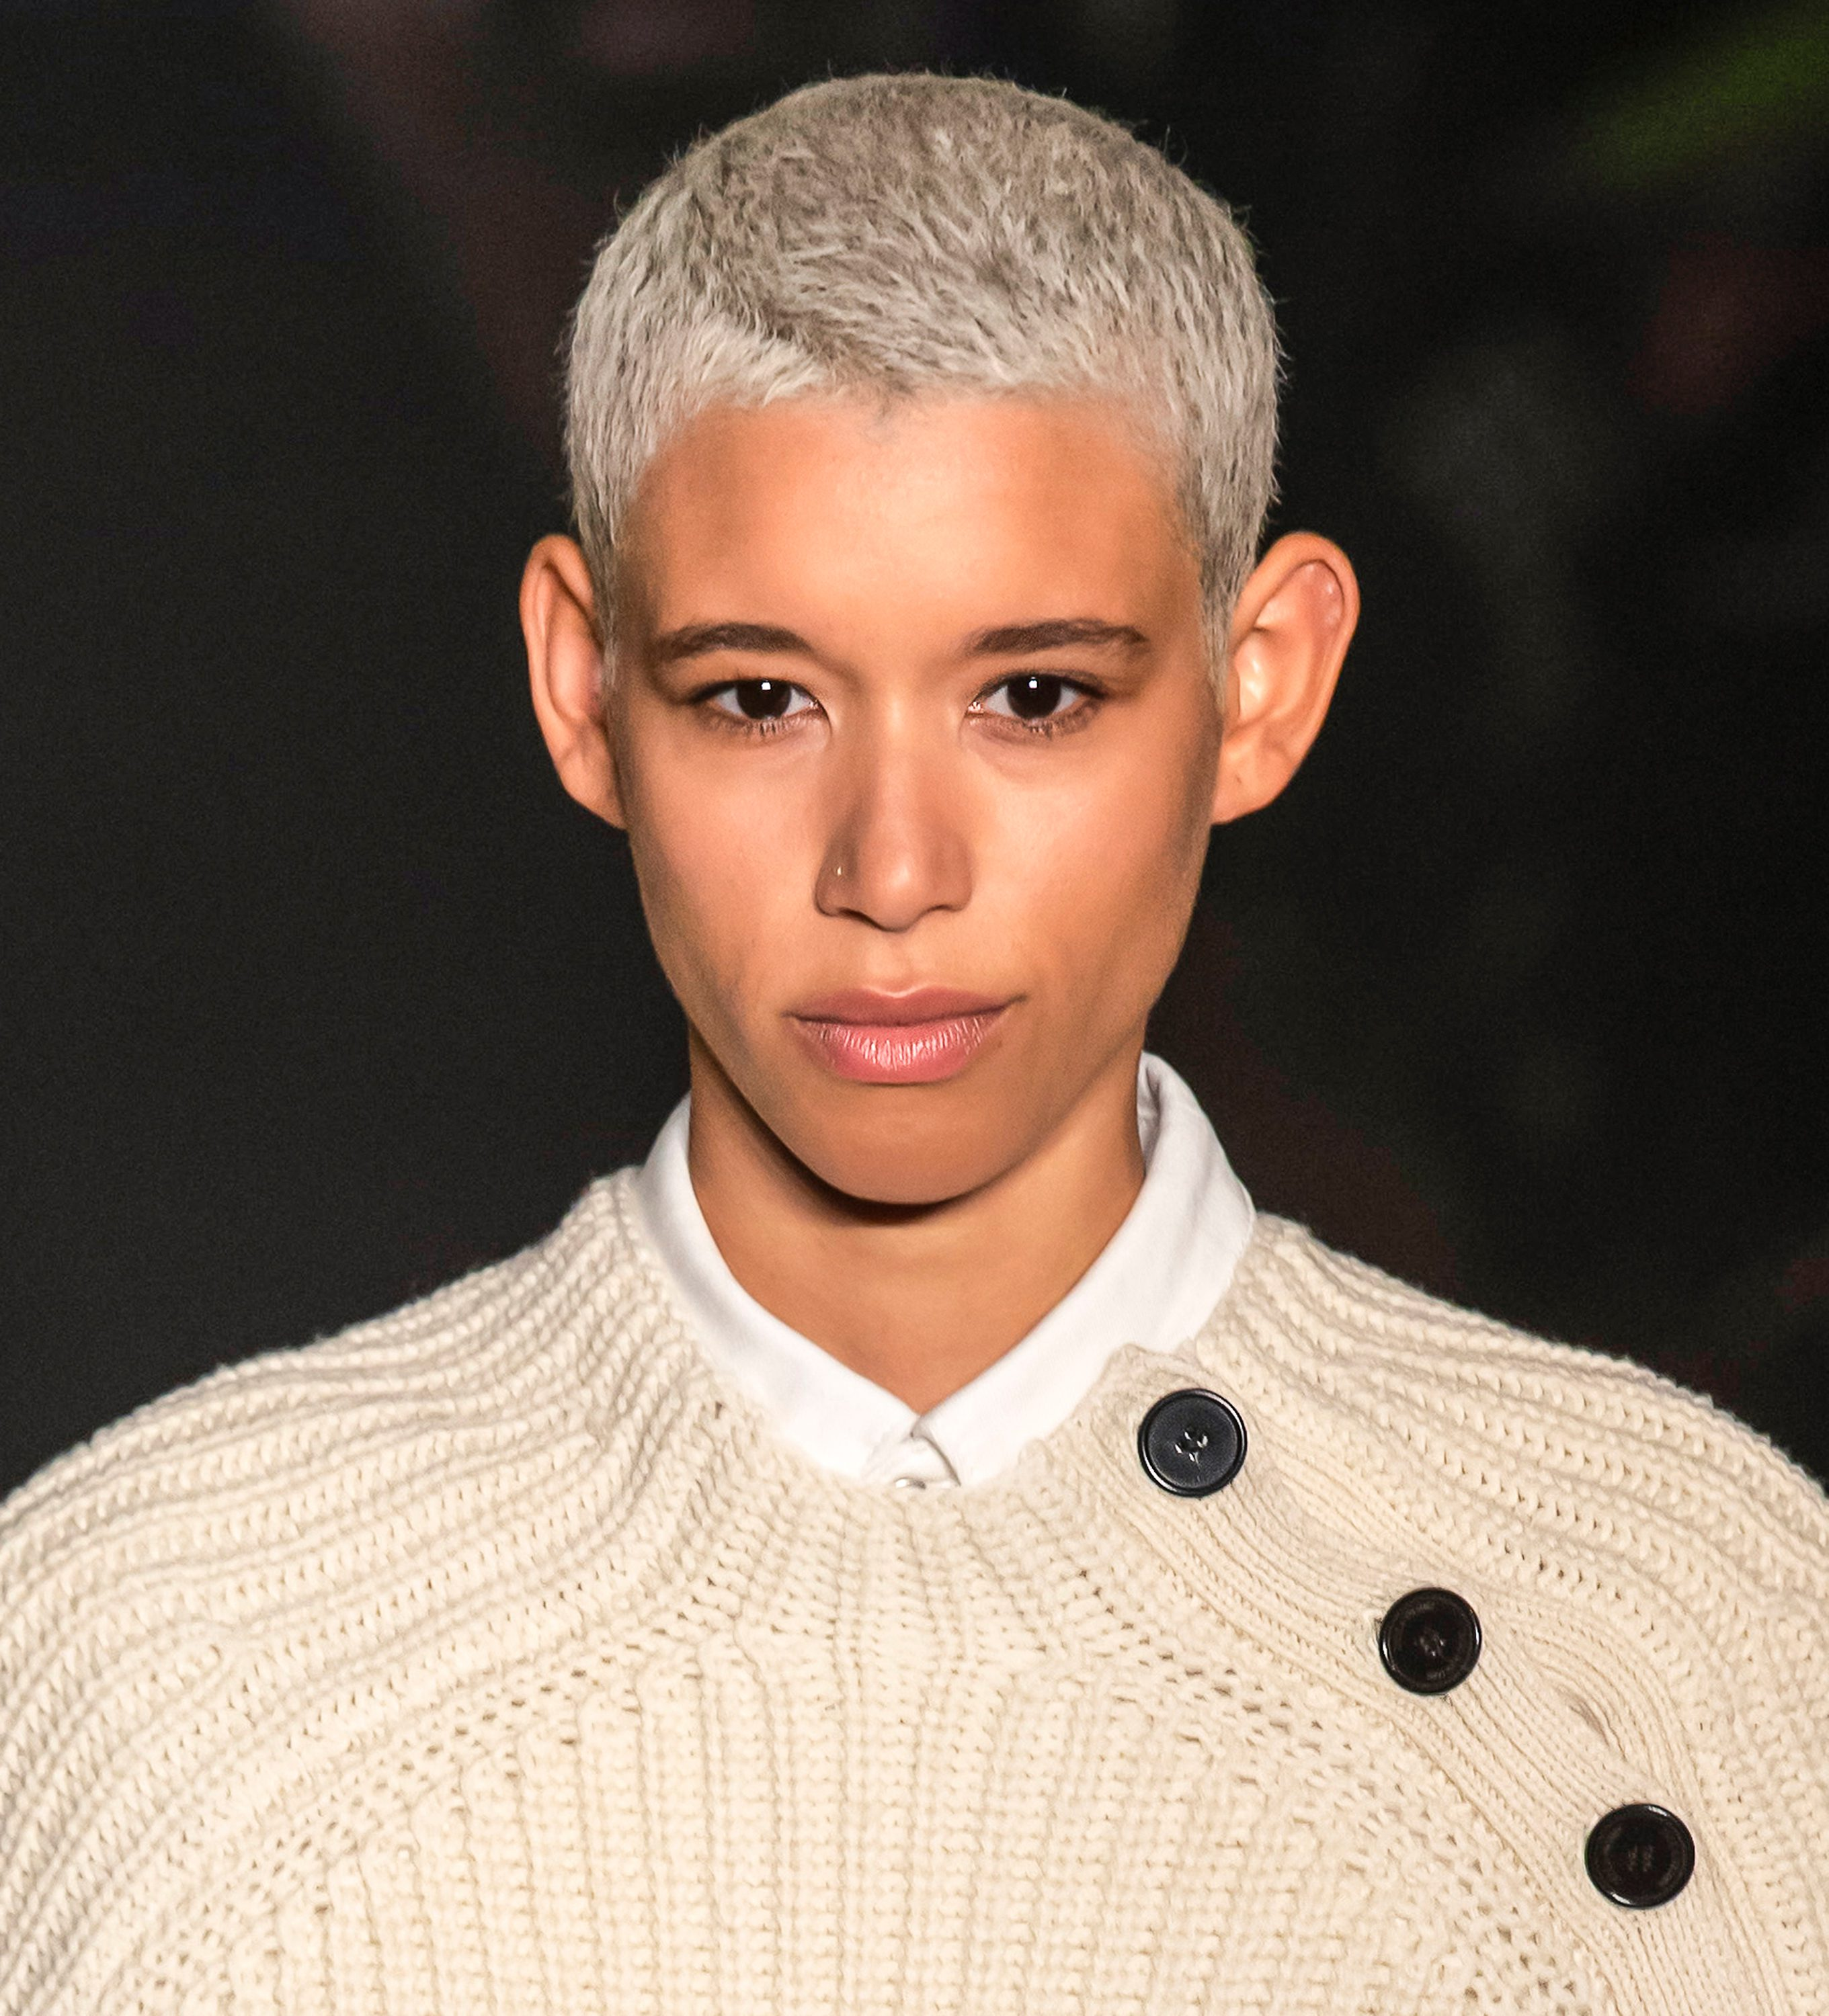 Dilone's Silver and Gray Buzz Cut